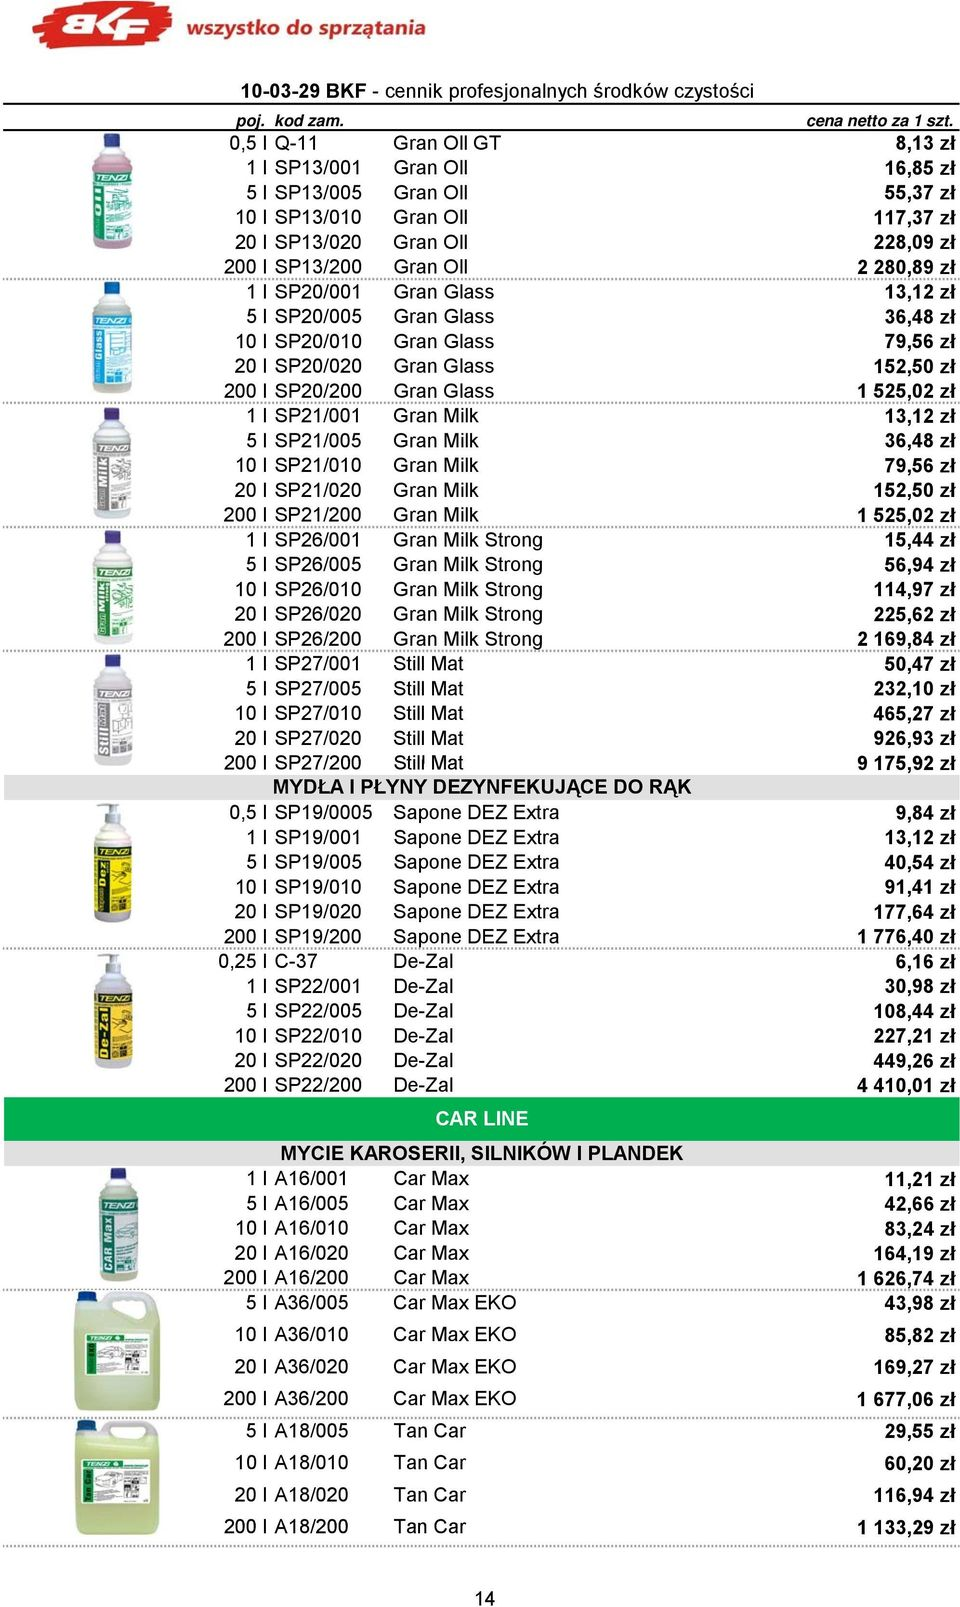 SP20/001 Gran Glass 13,12 zł 5 l SP20/005 Gran Glass 36,48 zł 10 l SP20/010 Gran Glass 79,56 zł 20 l SP20/020 Gran Glass 152,50 zł 200 l SP20/200 Gran Glass 1 525,02 zł 1 l SP21/001 Gran Milk 13,12